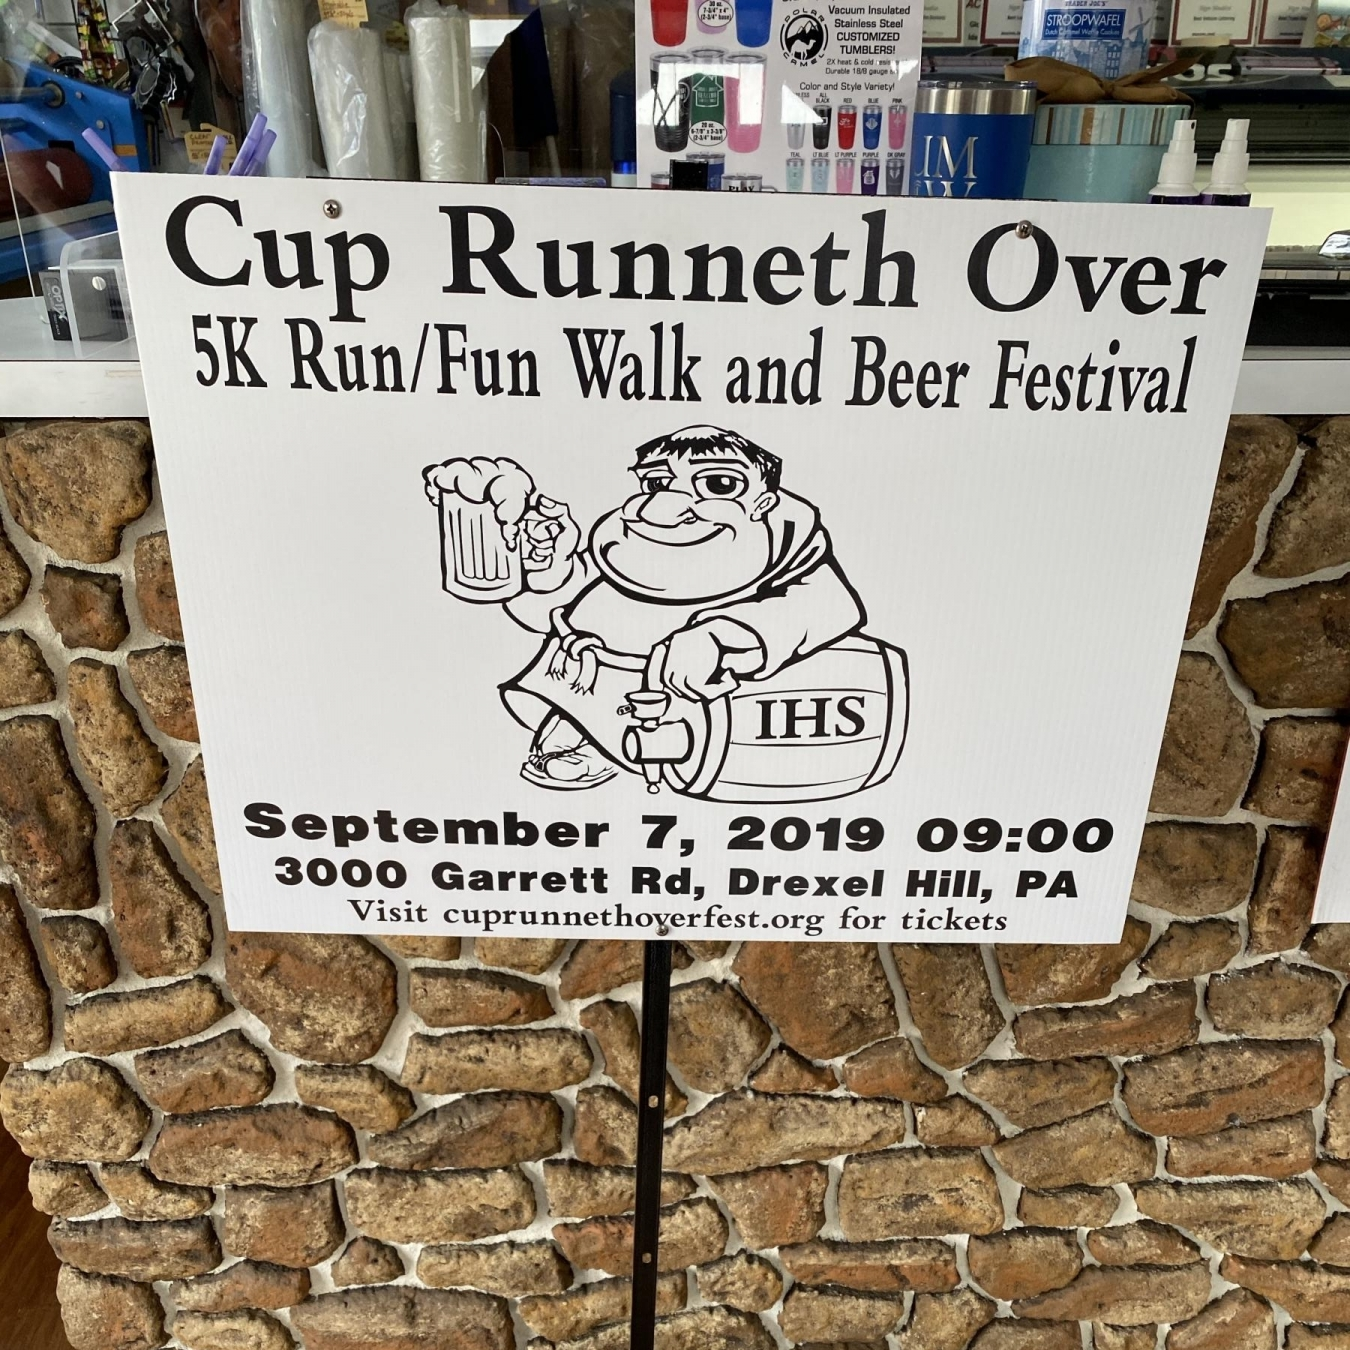 Cup Runneth Over Sign on Heavy Duty Stake